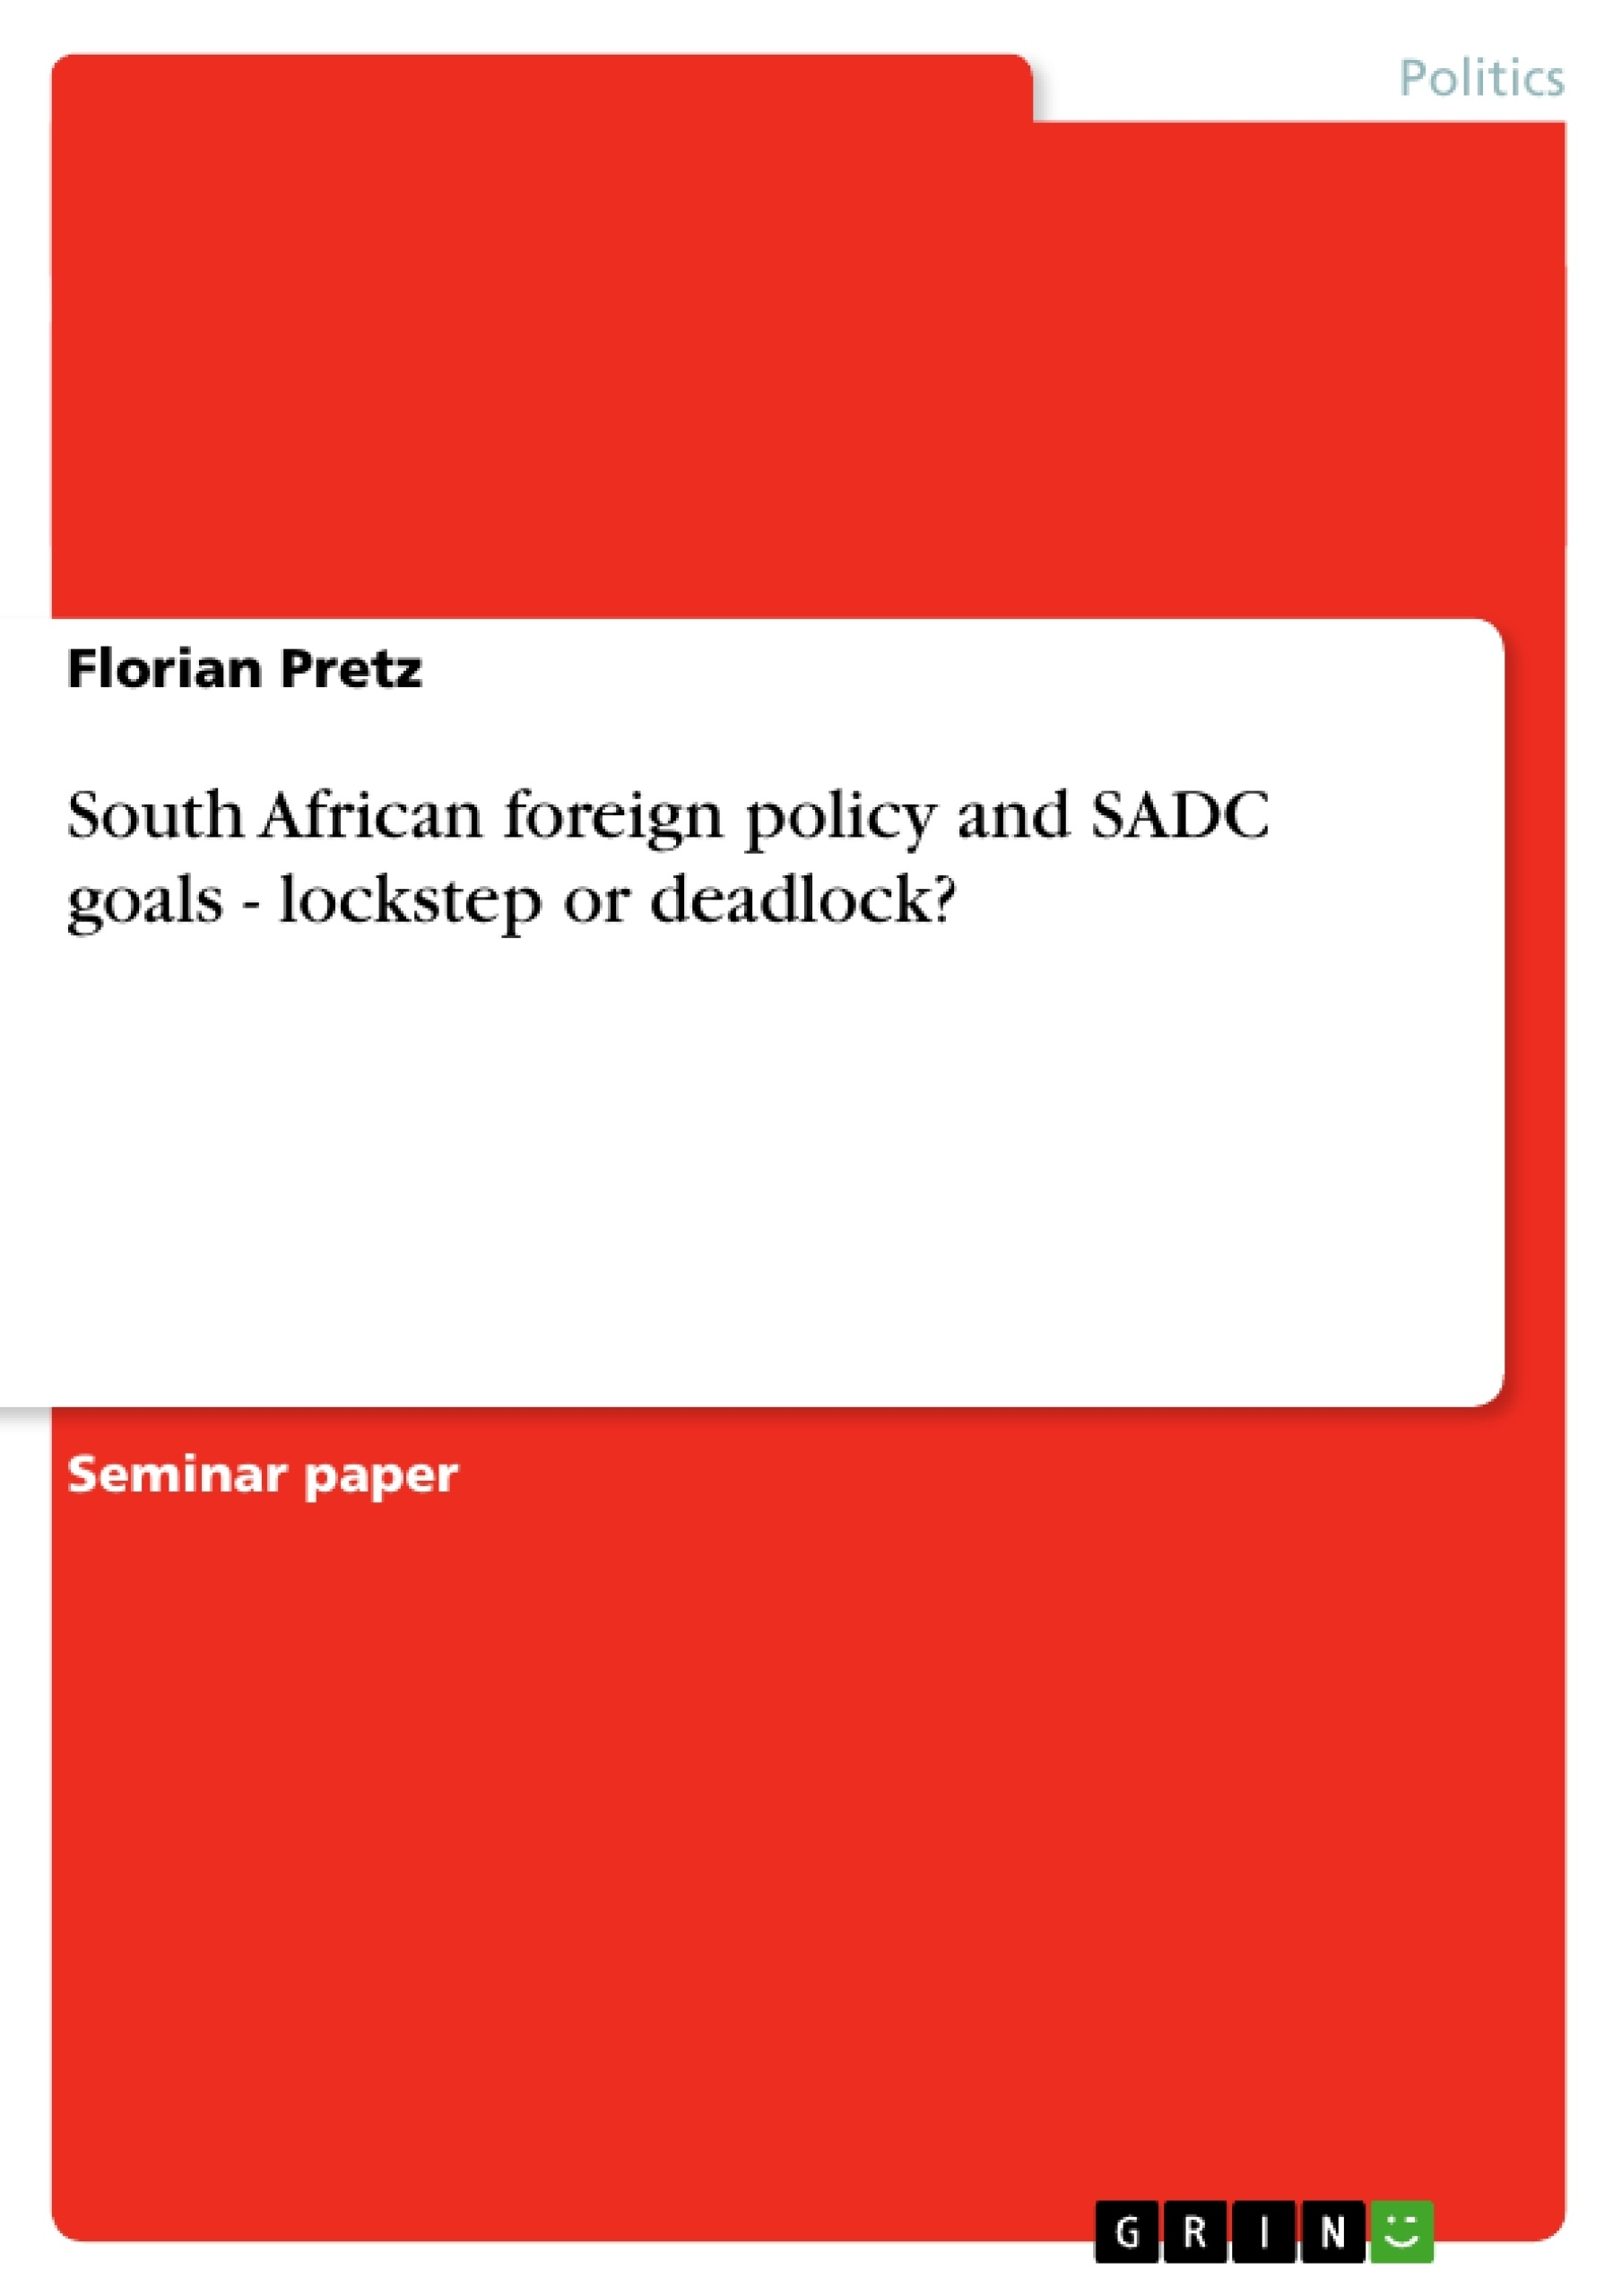 Title: South African foreign policy and SADC goals - lockstep or deadlock?